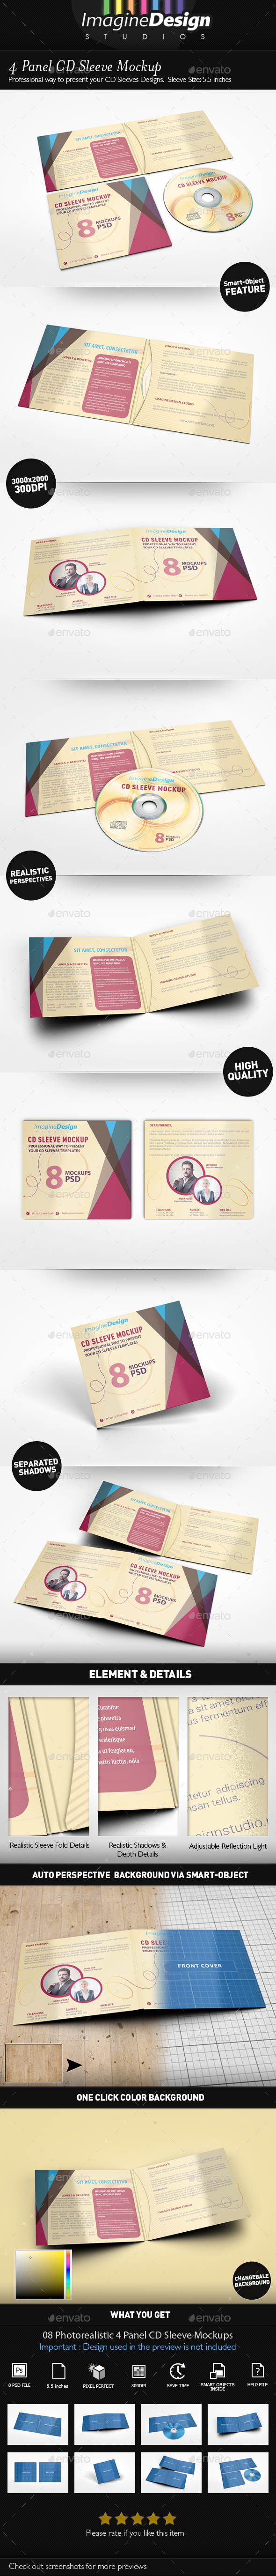 4 Panel CD Sleeve Mockup - Discs Packaging